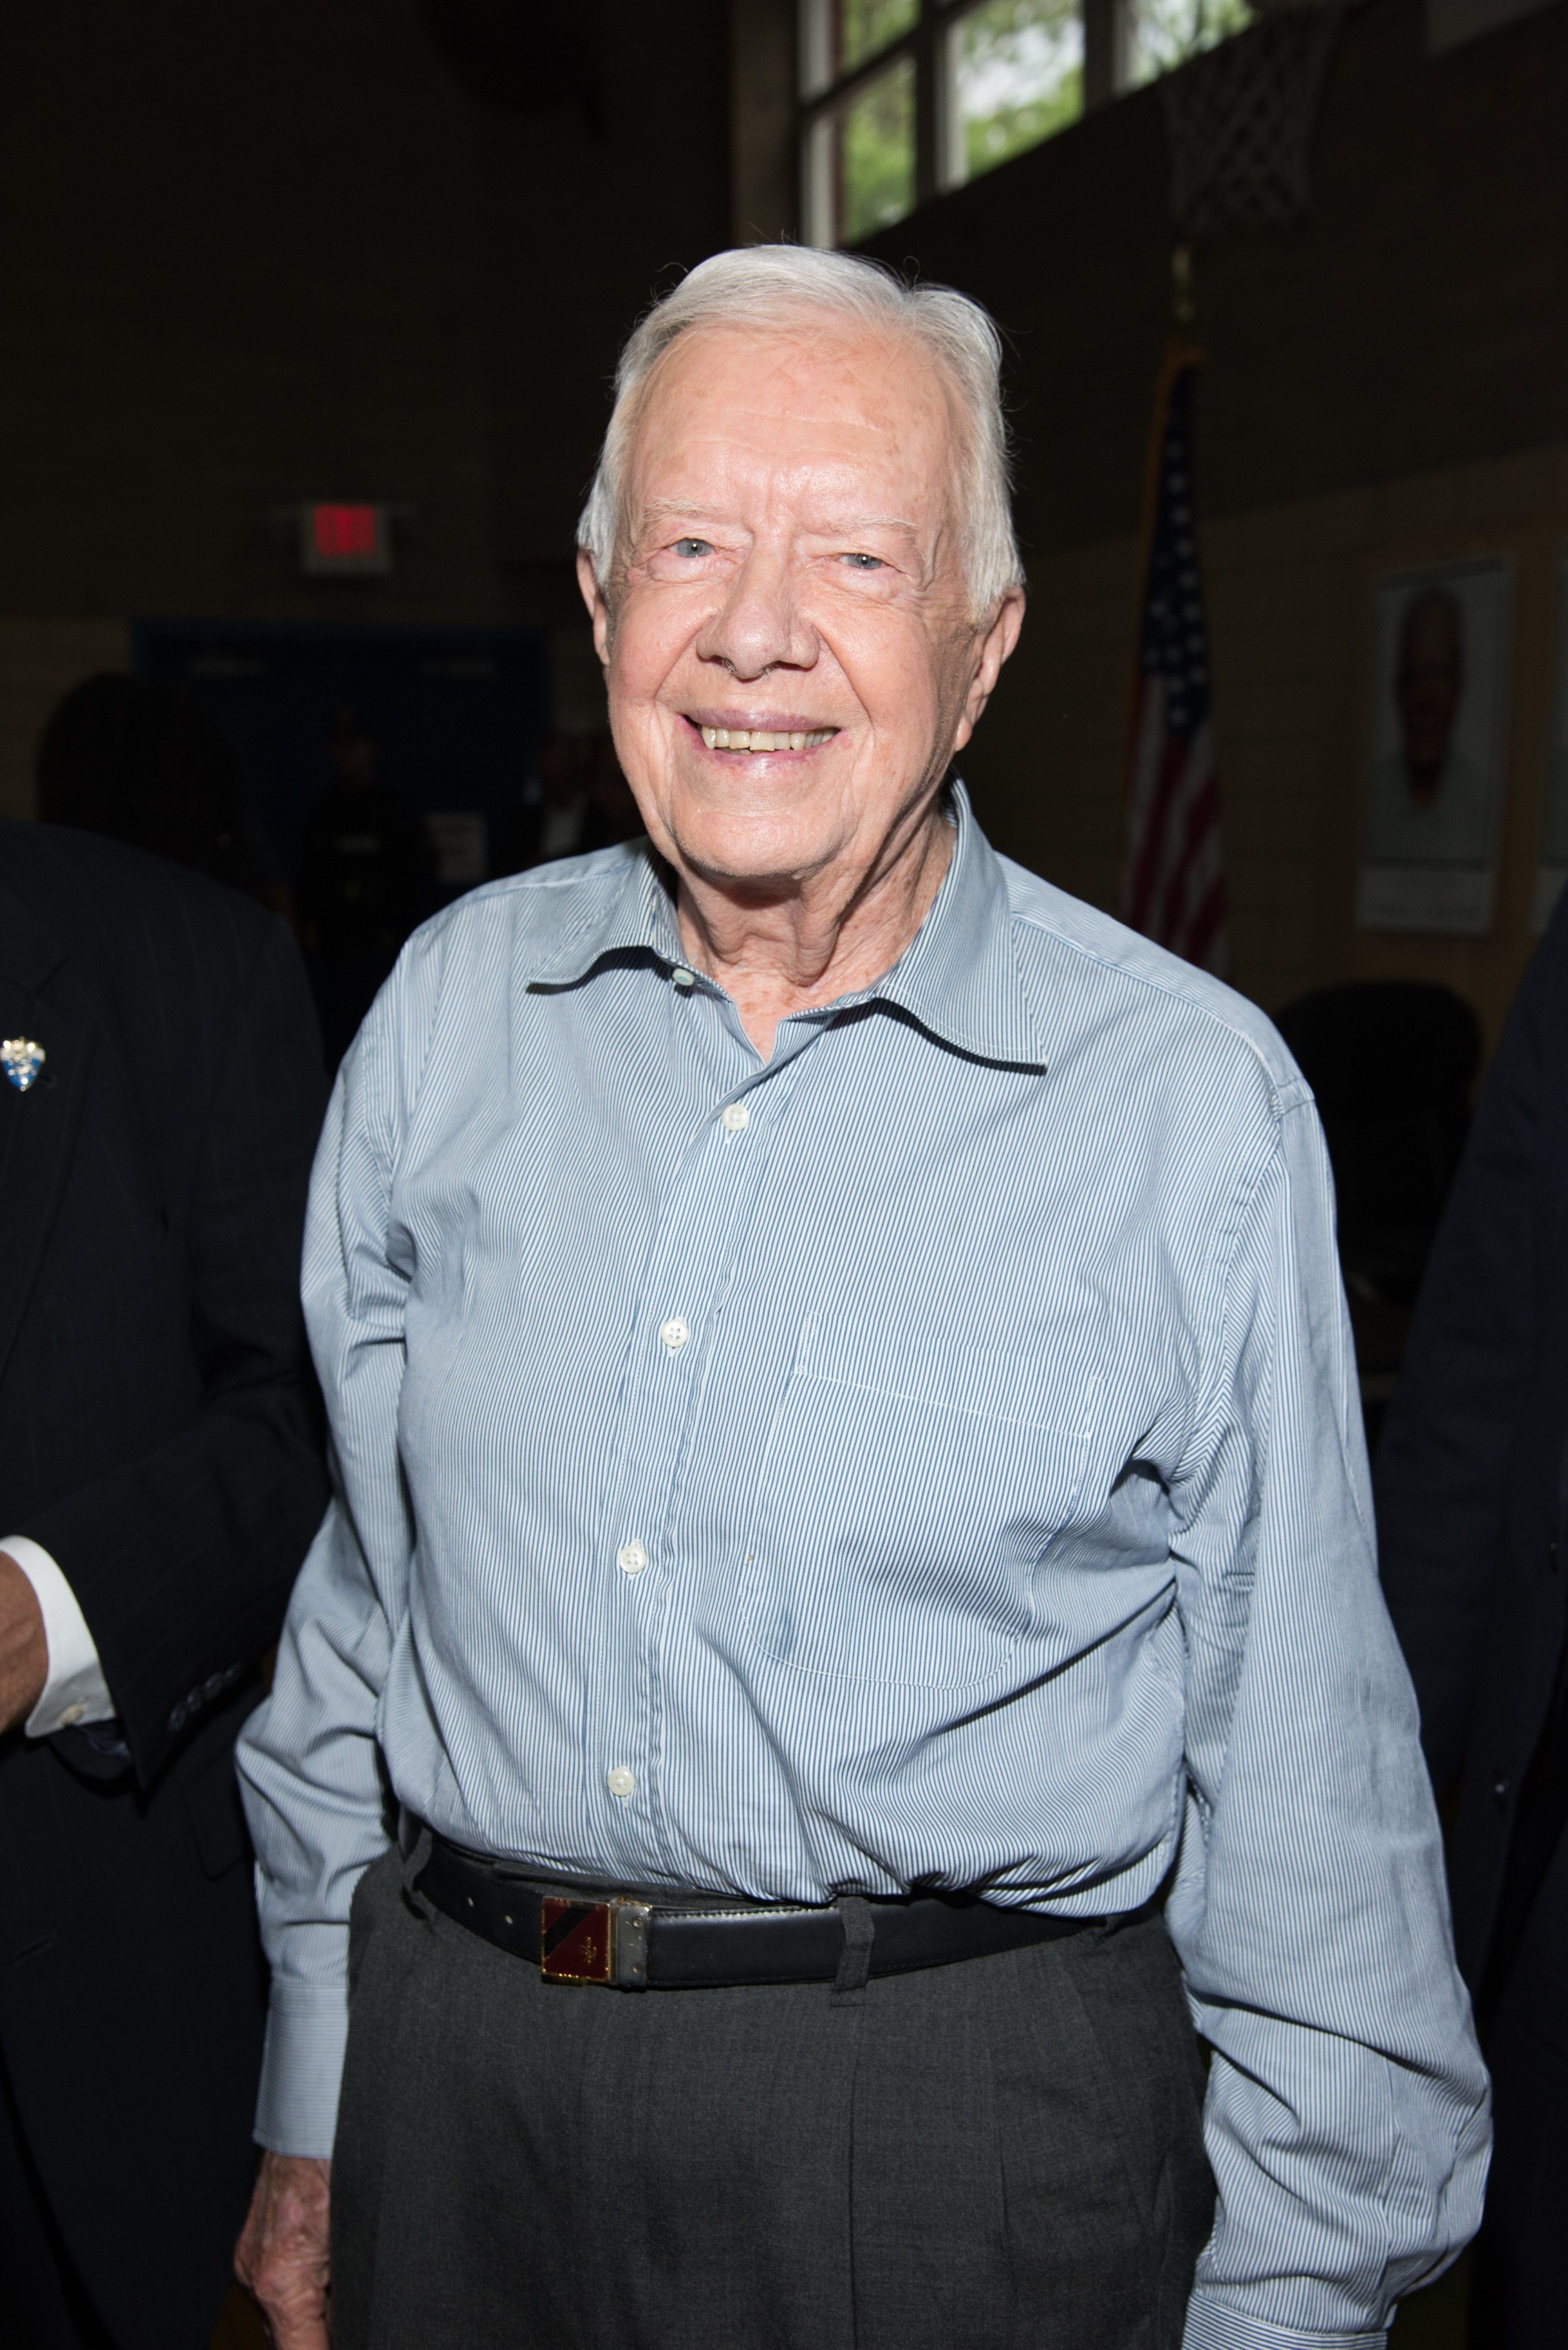 "Jimmy Carter signe des exemplaires de ""A Full Life Reflections At Ninety"" à la librairie Bookends le 8 juillet 2015 à Ridgewood, dans le New Jersey. 